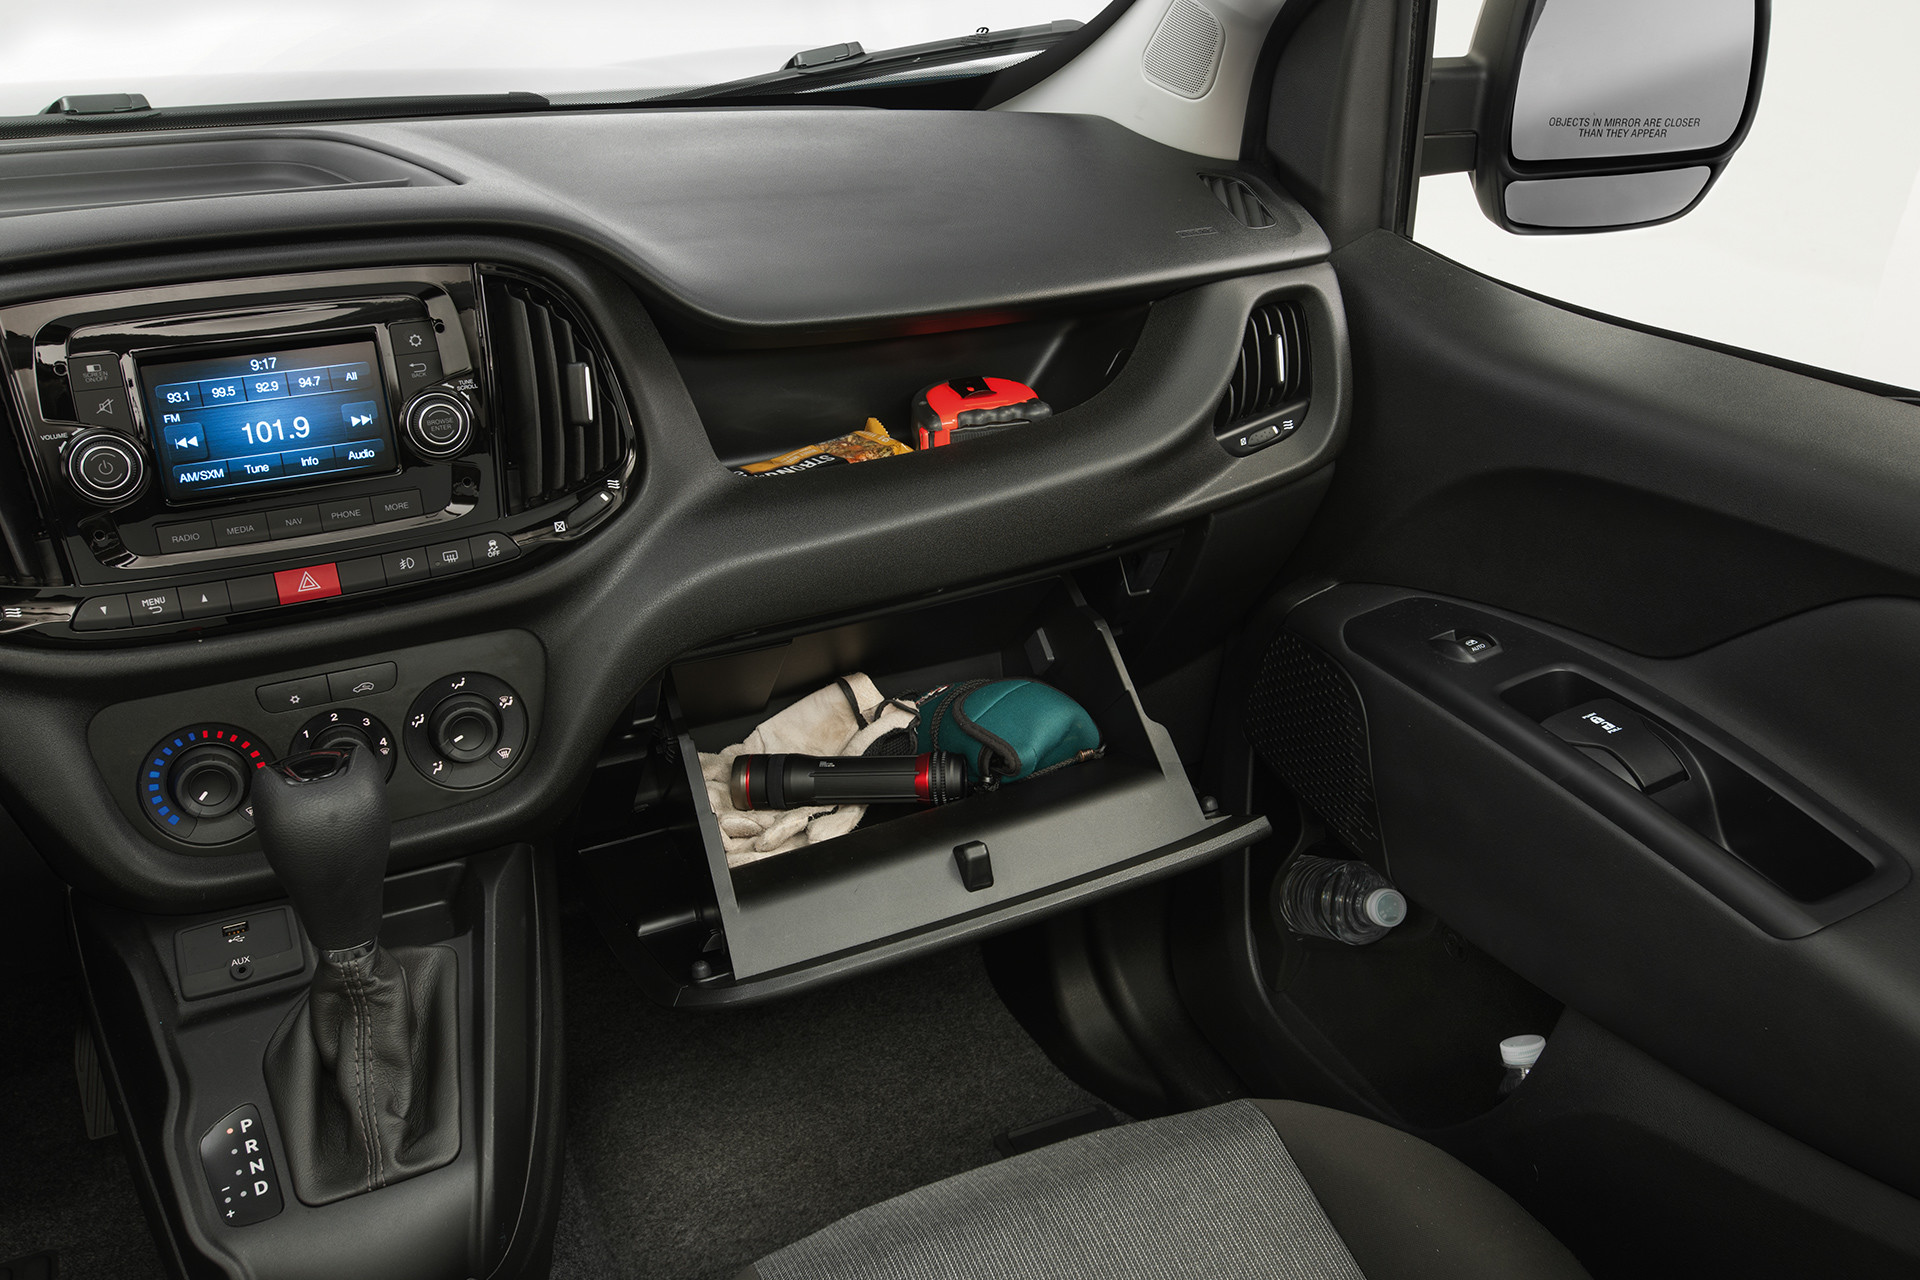 2019 Ram ProMaster City cockpit dual glove box storage